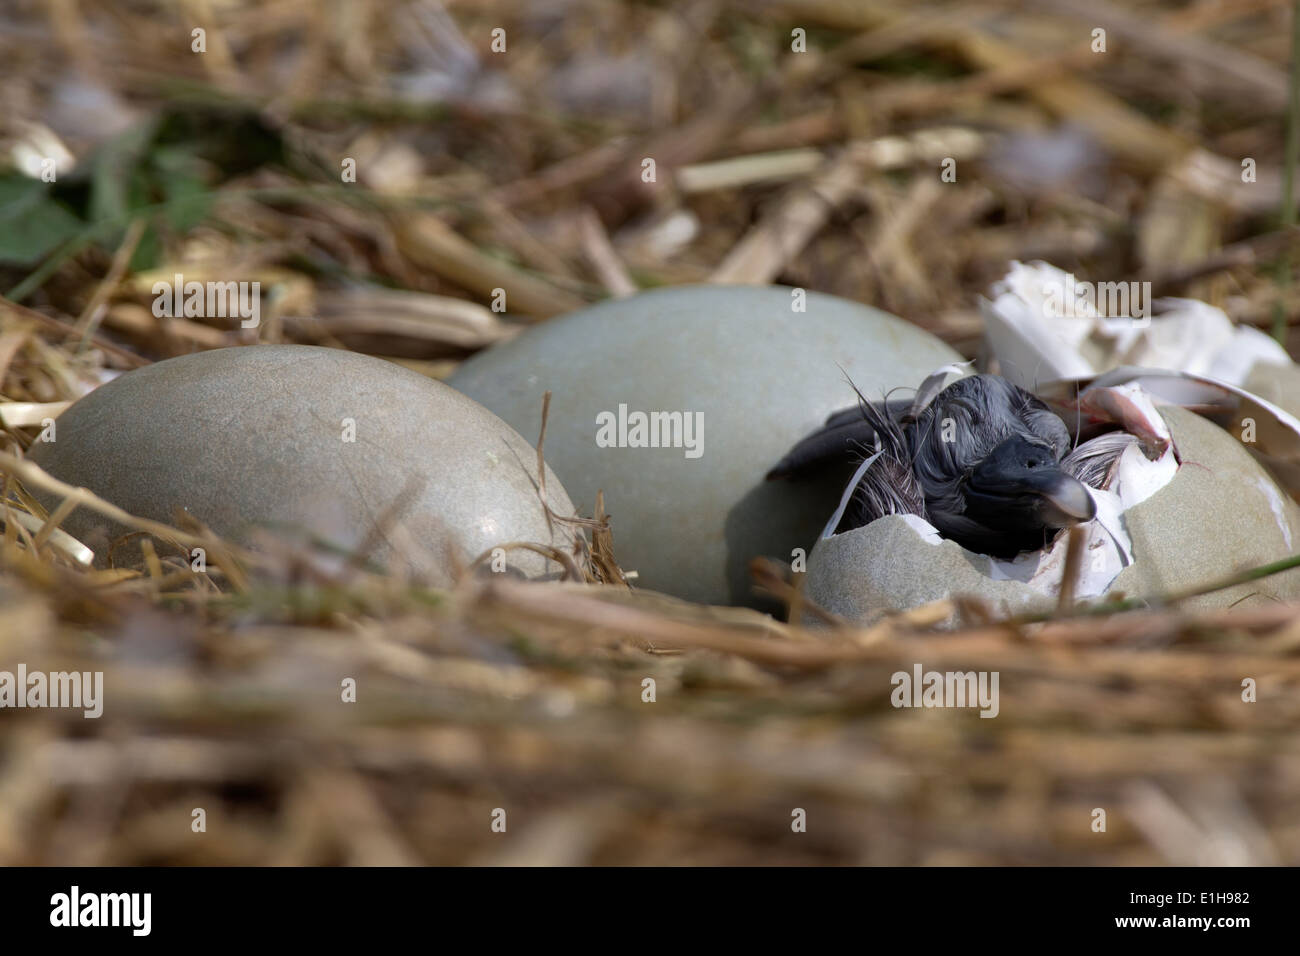 Mute Swan, Cygnus olor cygnet hatching from its egg - Stock Image